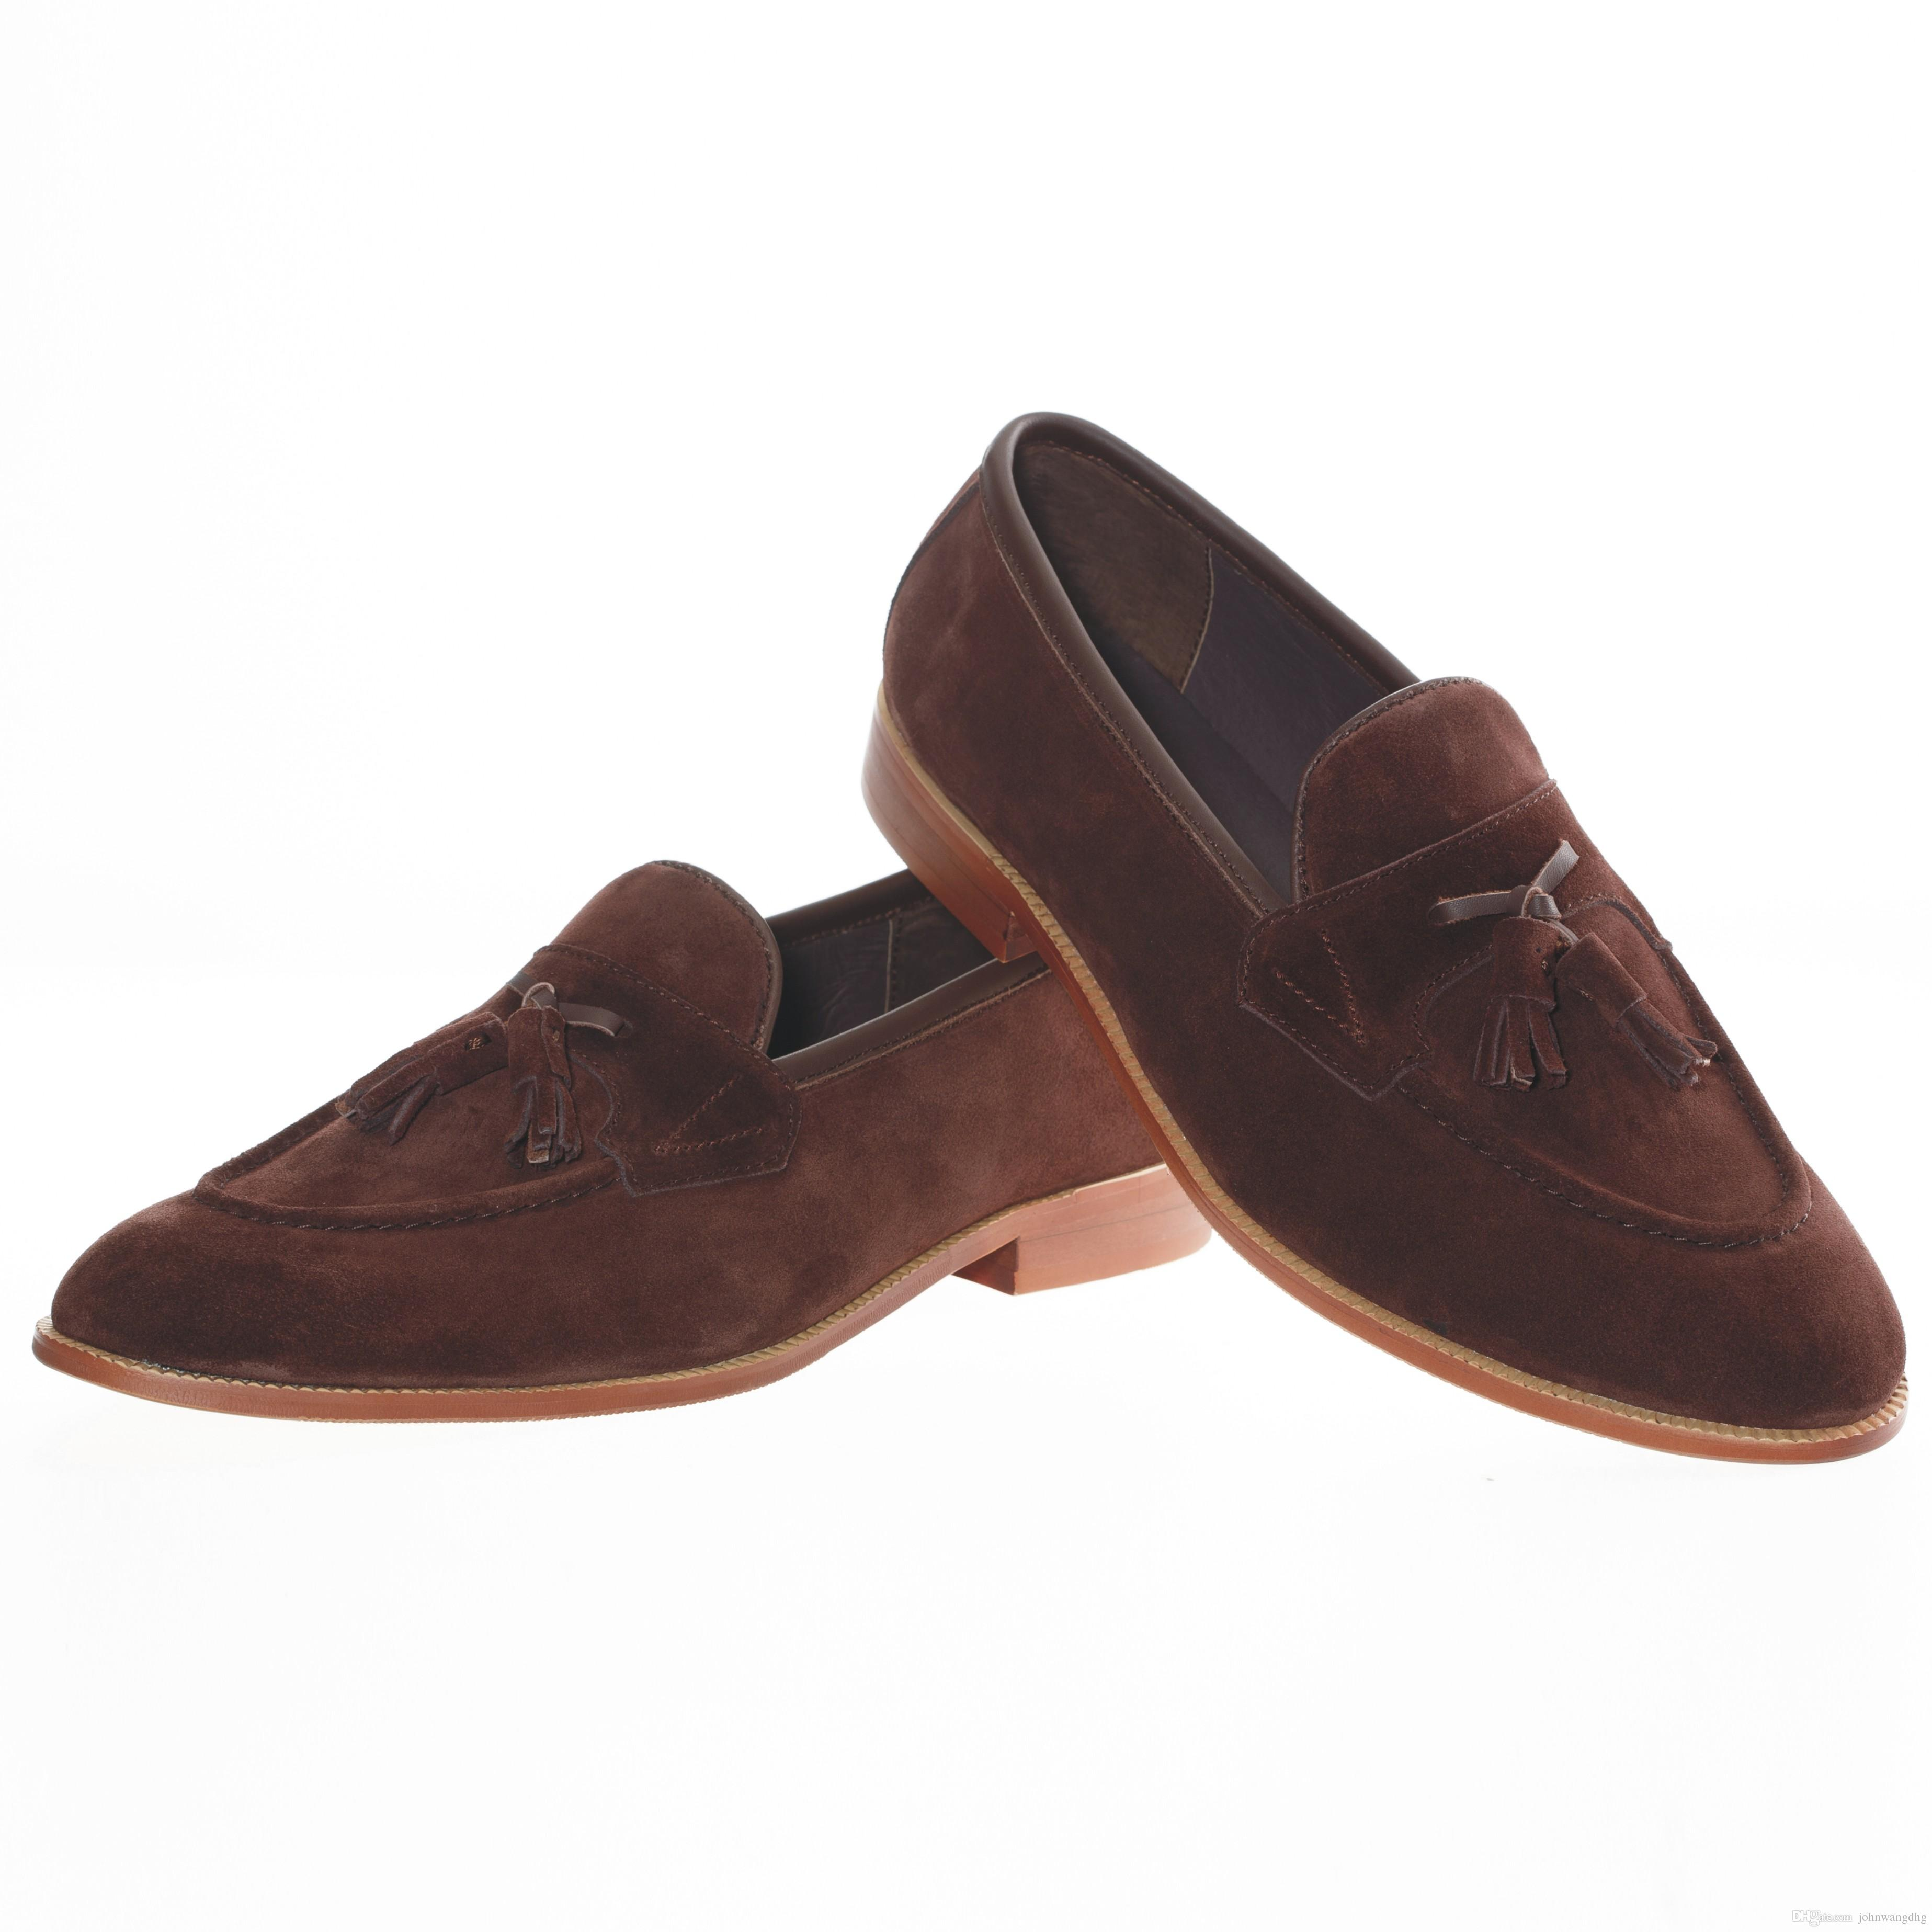 Mens Brown Shoes Size